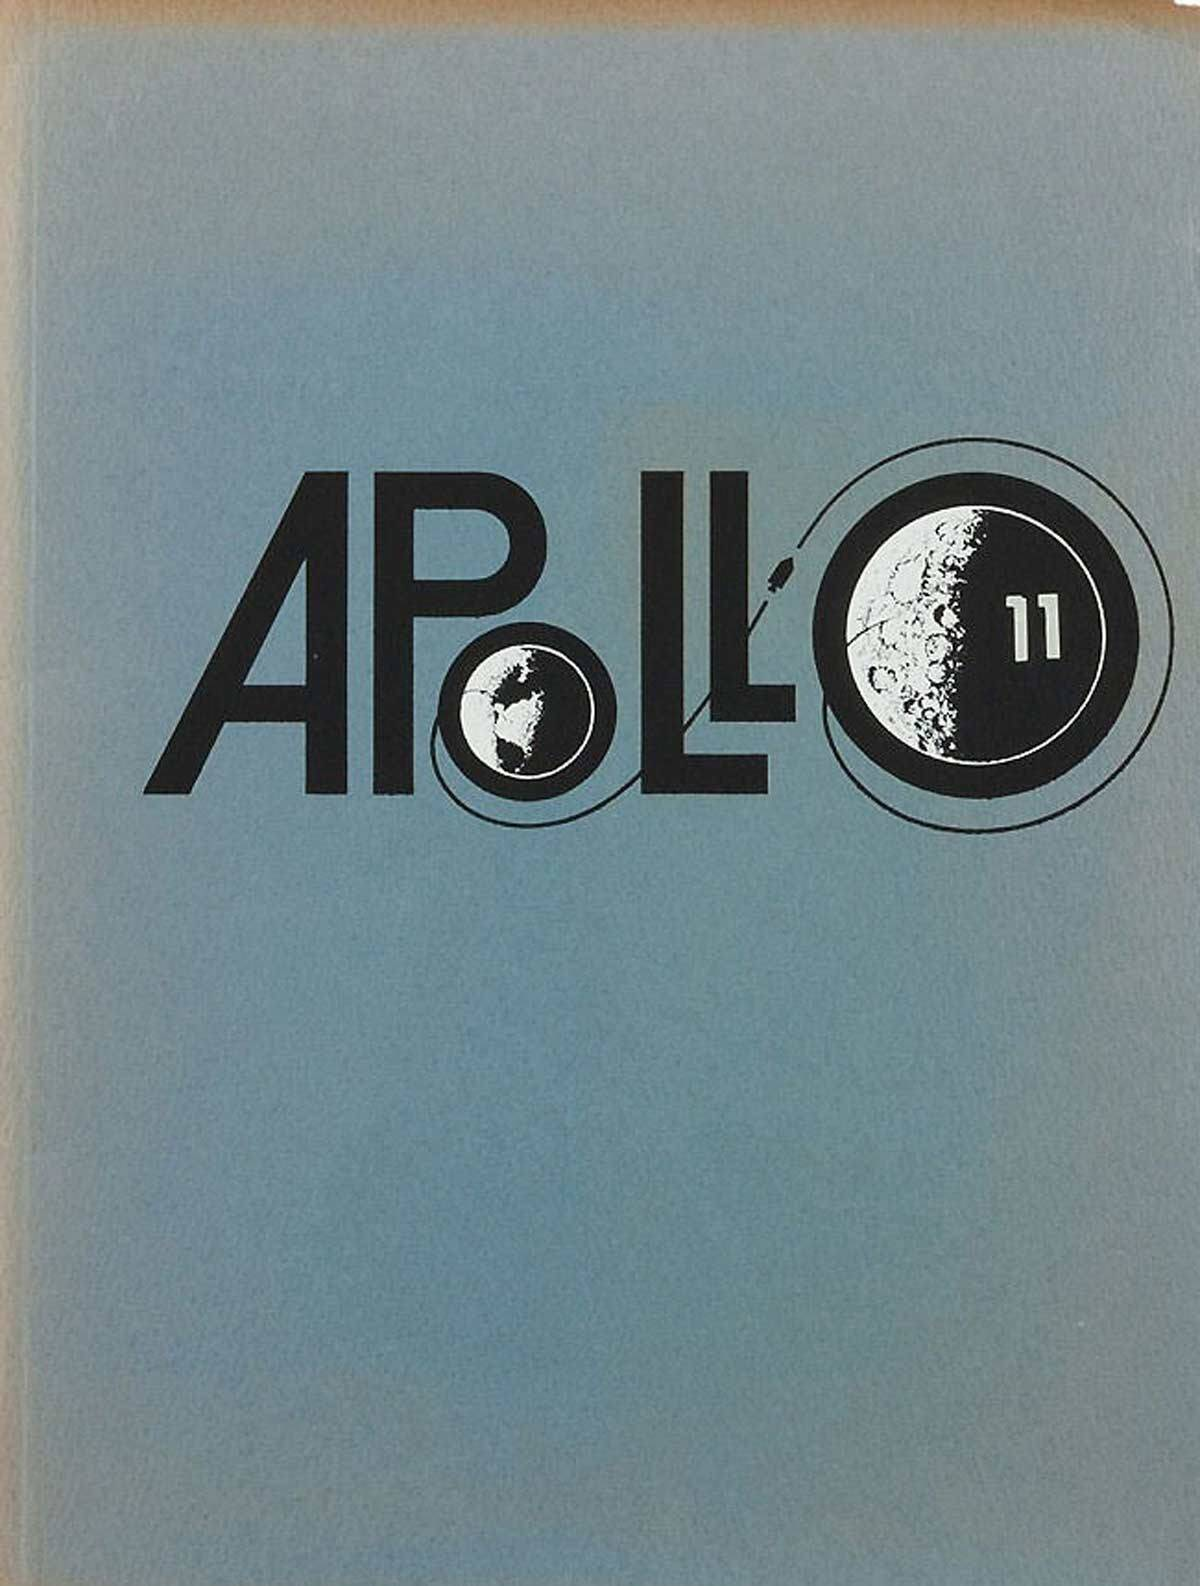 apollo mission logos posters - photo #23